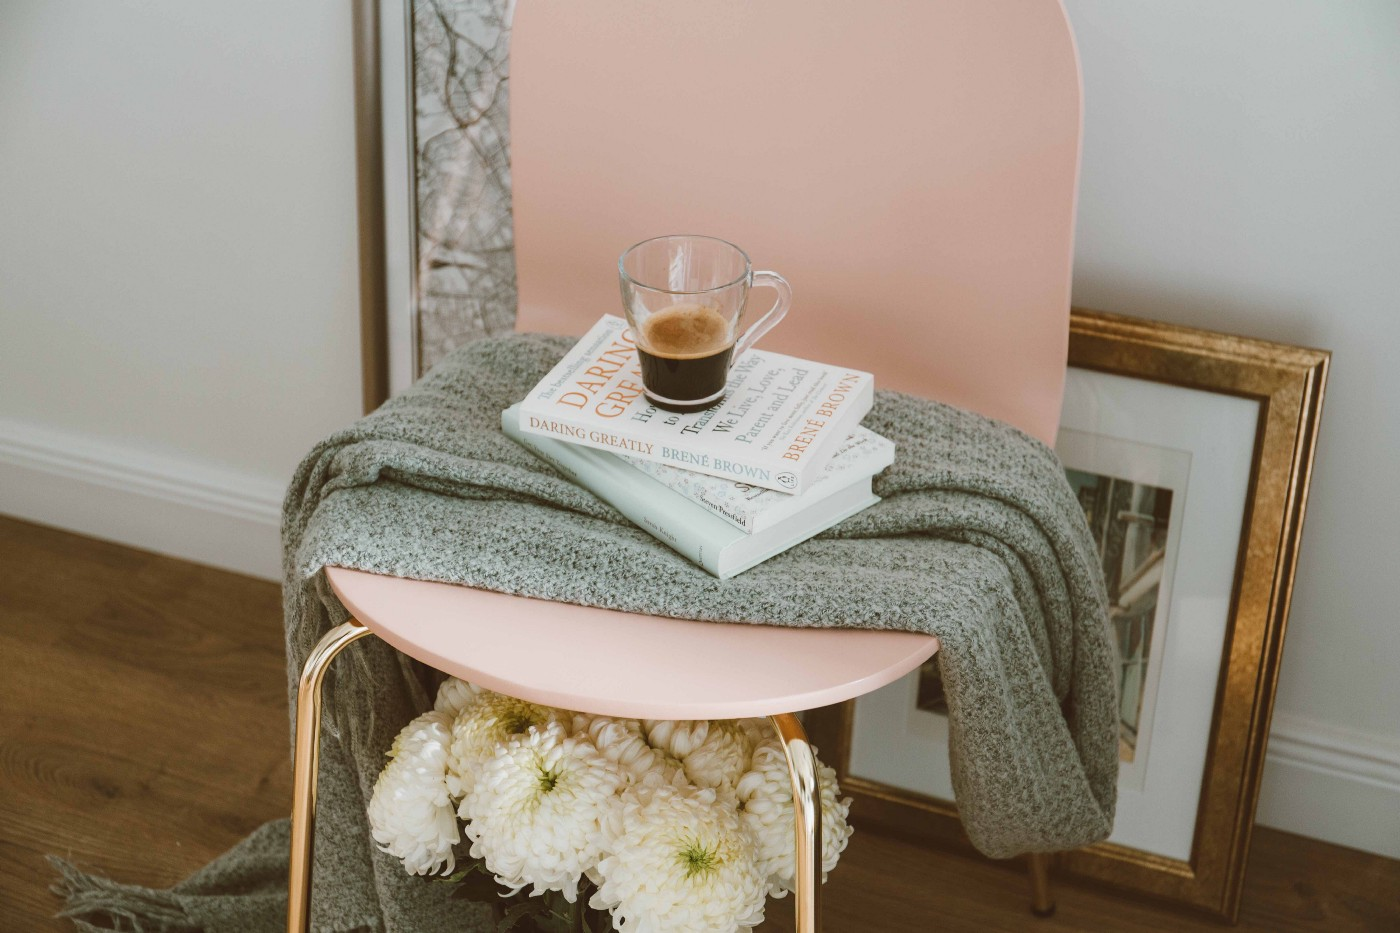 coffee, books, and blanket on chair